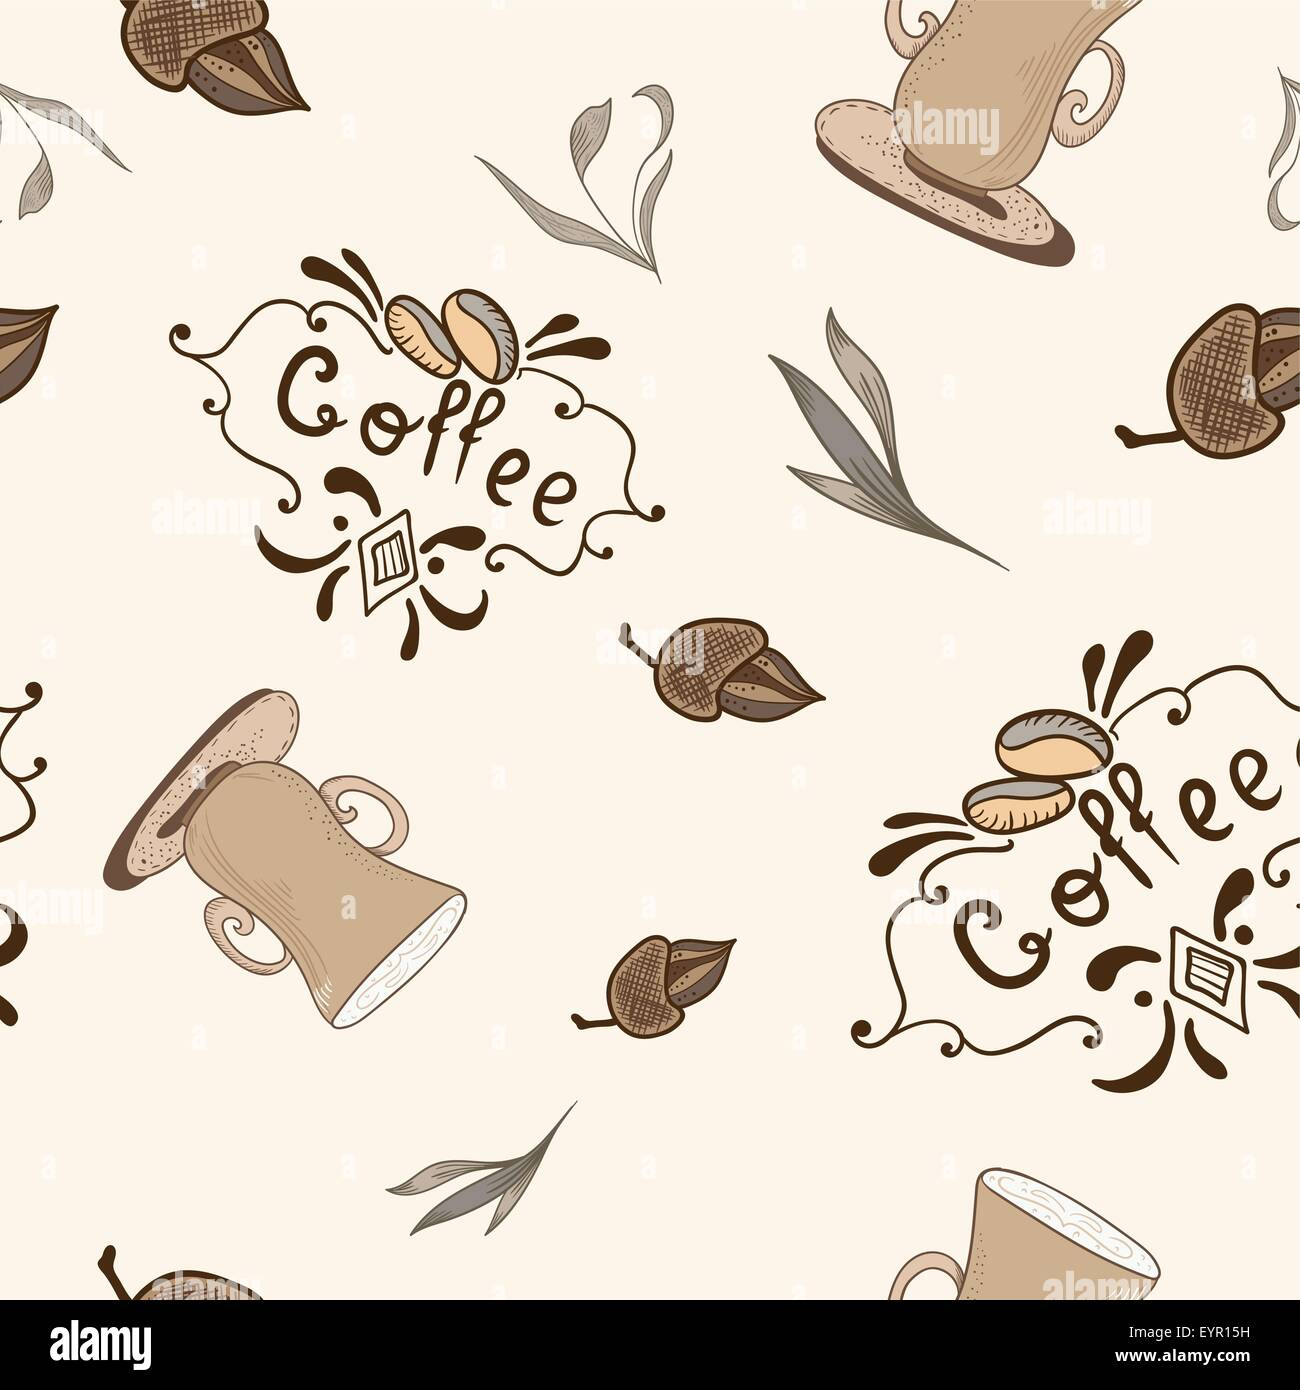 beige and brown soft texture with coffee lettering, beans and cups